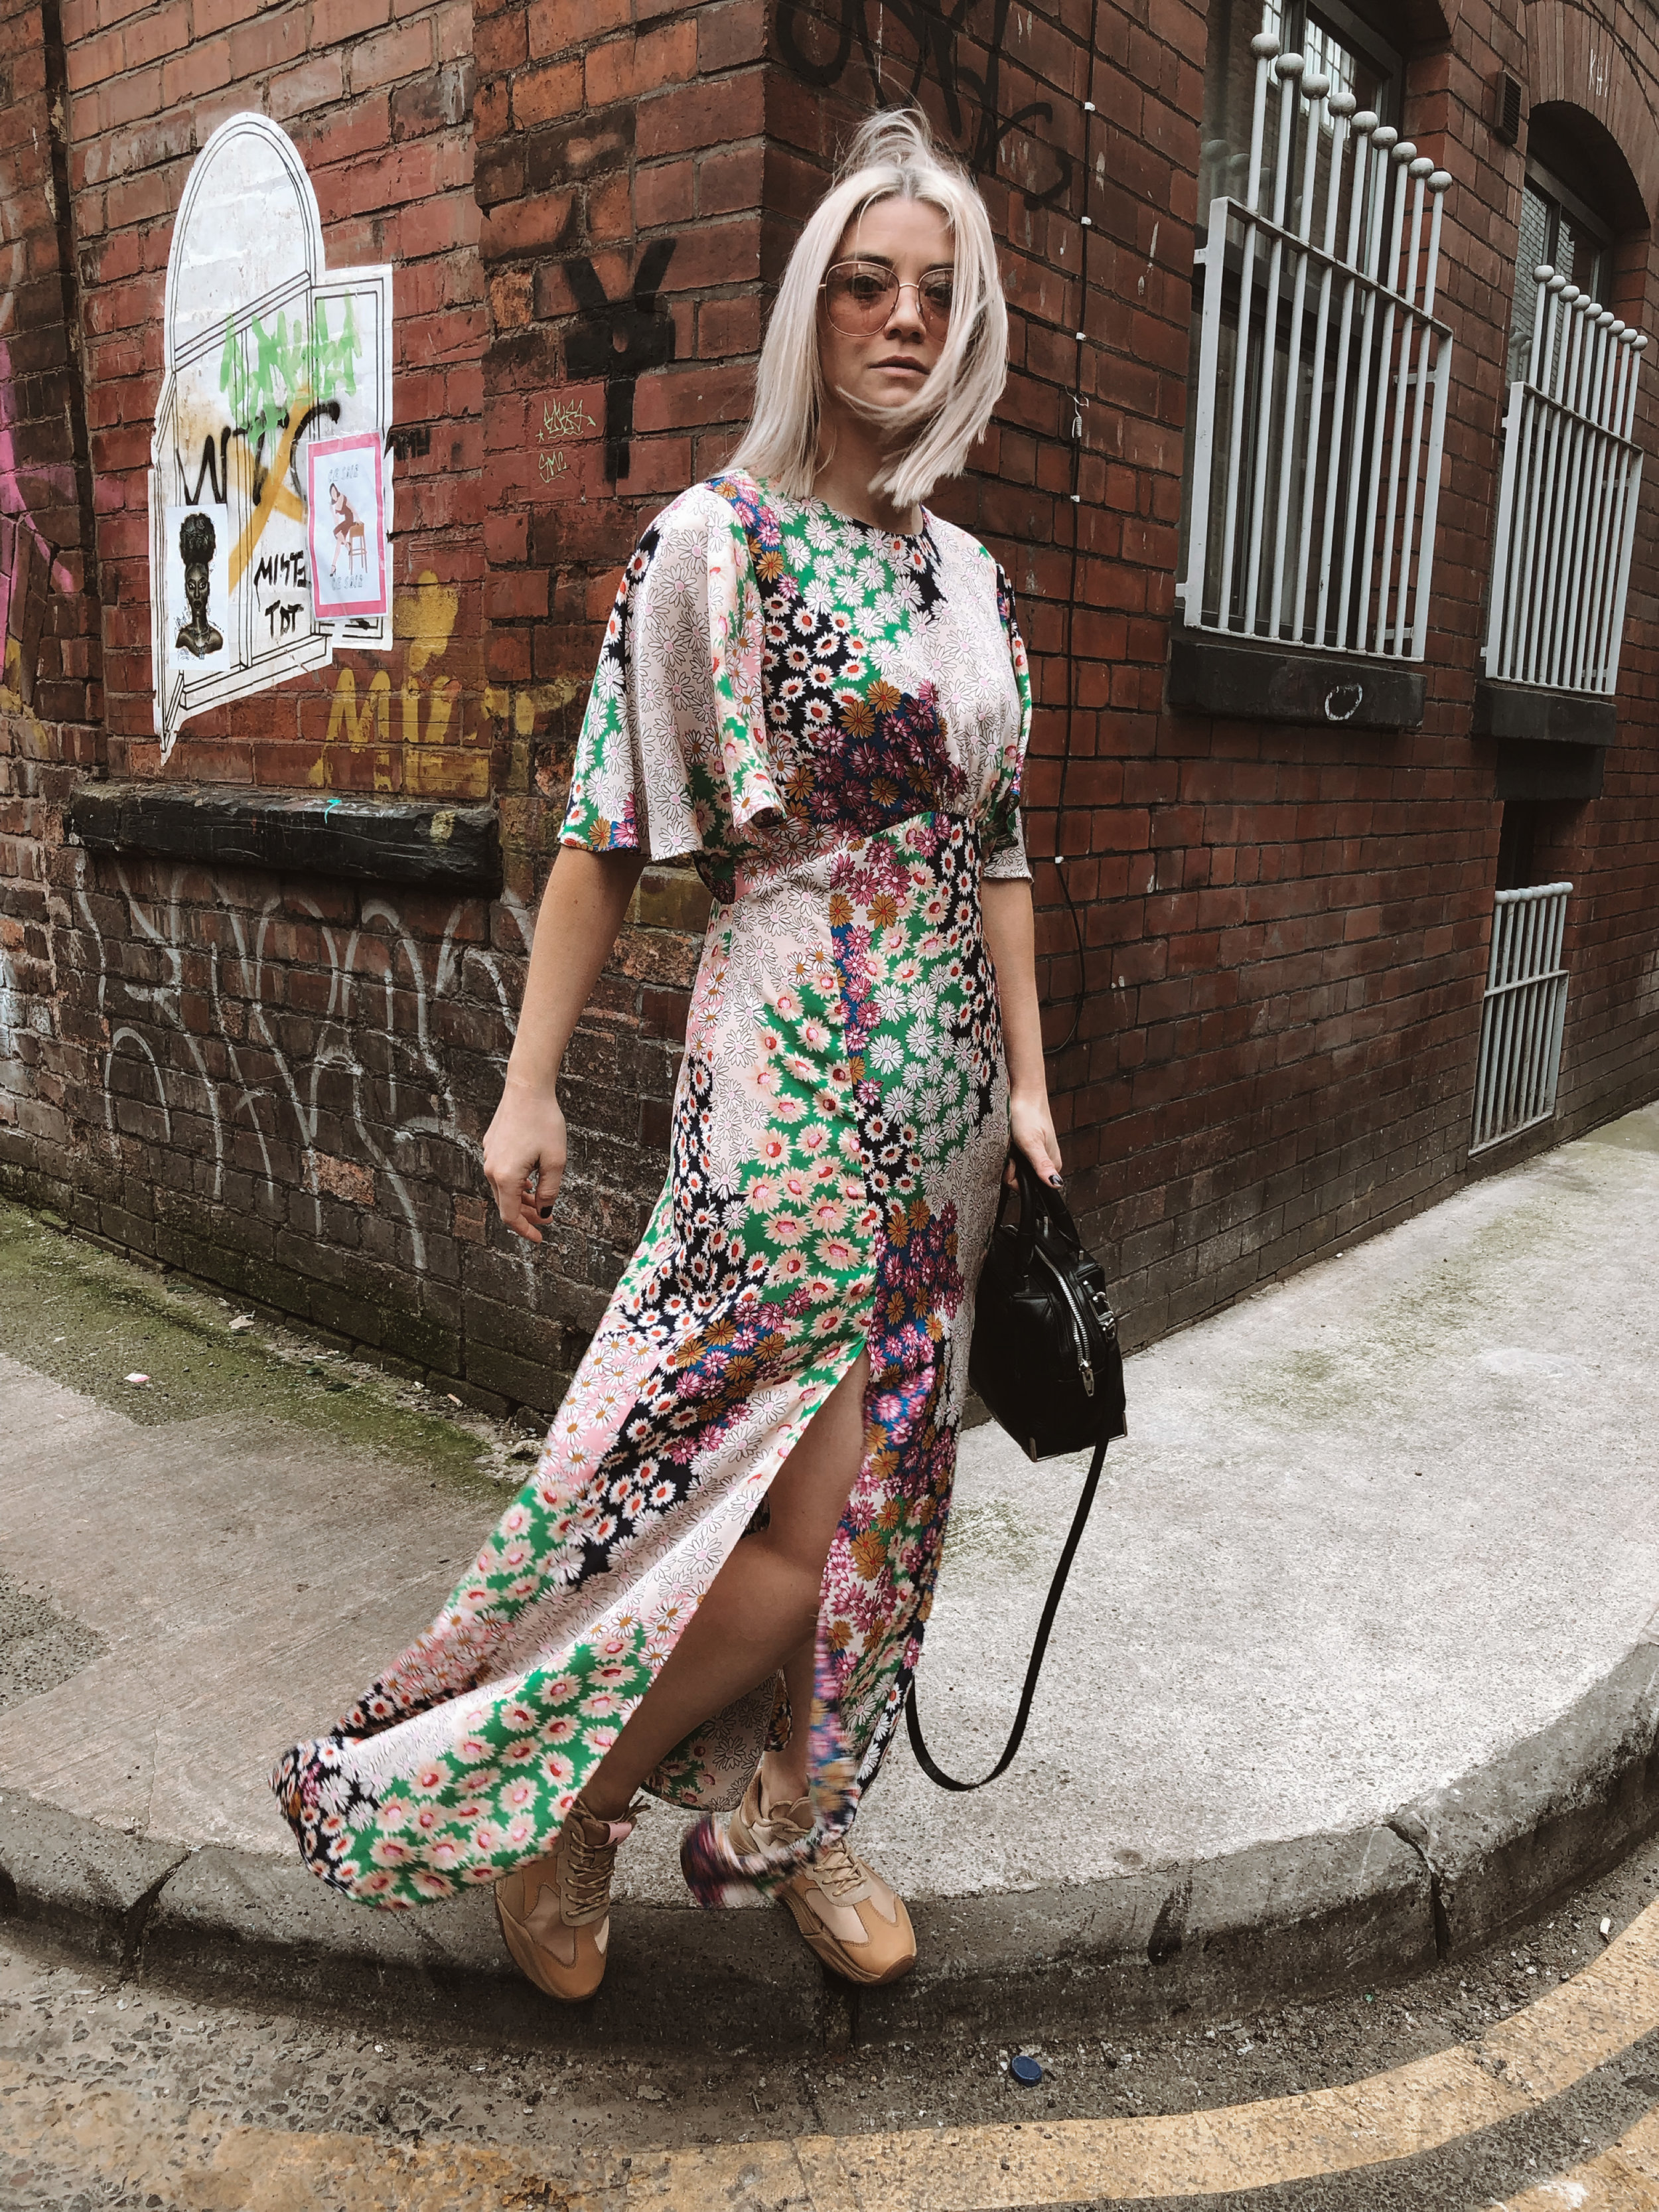 topshop auston dress, topshop floral dress, scotch and soda footwear, chunky trainers, summer dress, dresses and trainers, joey taylor, northern quarter 3